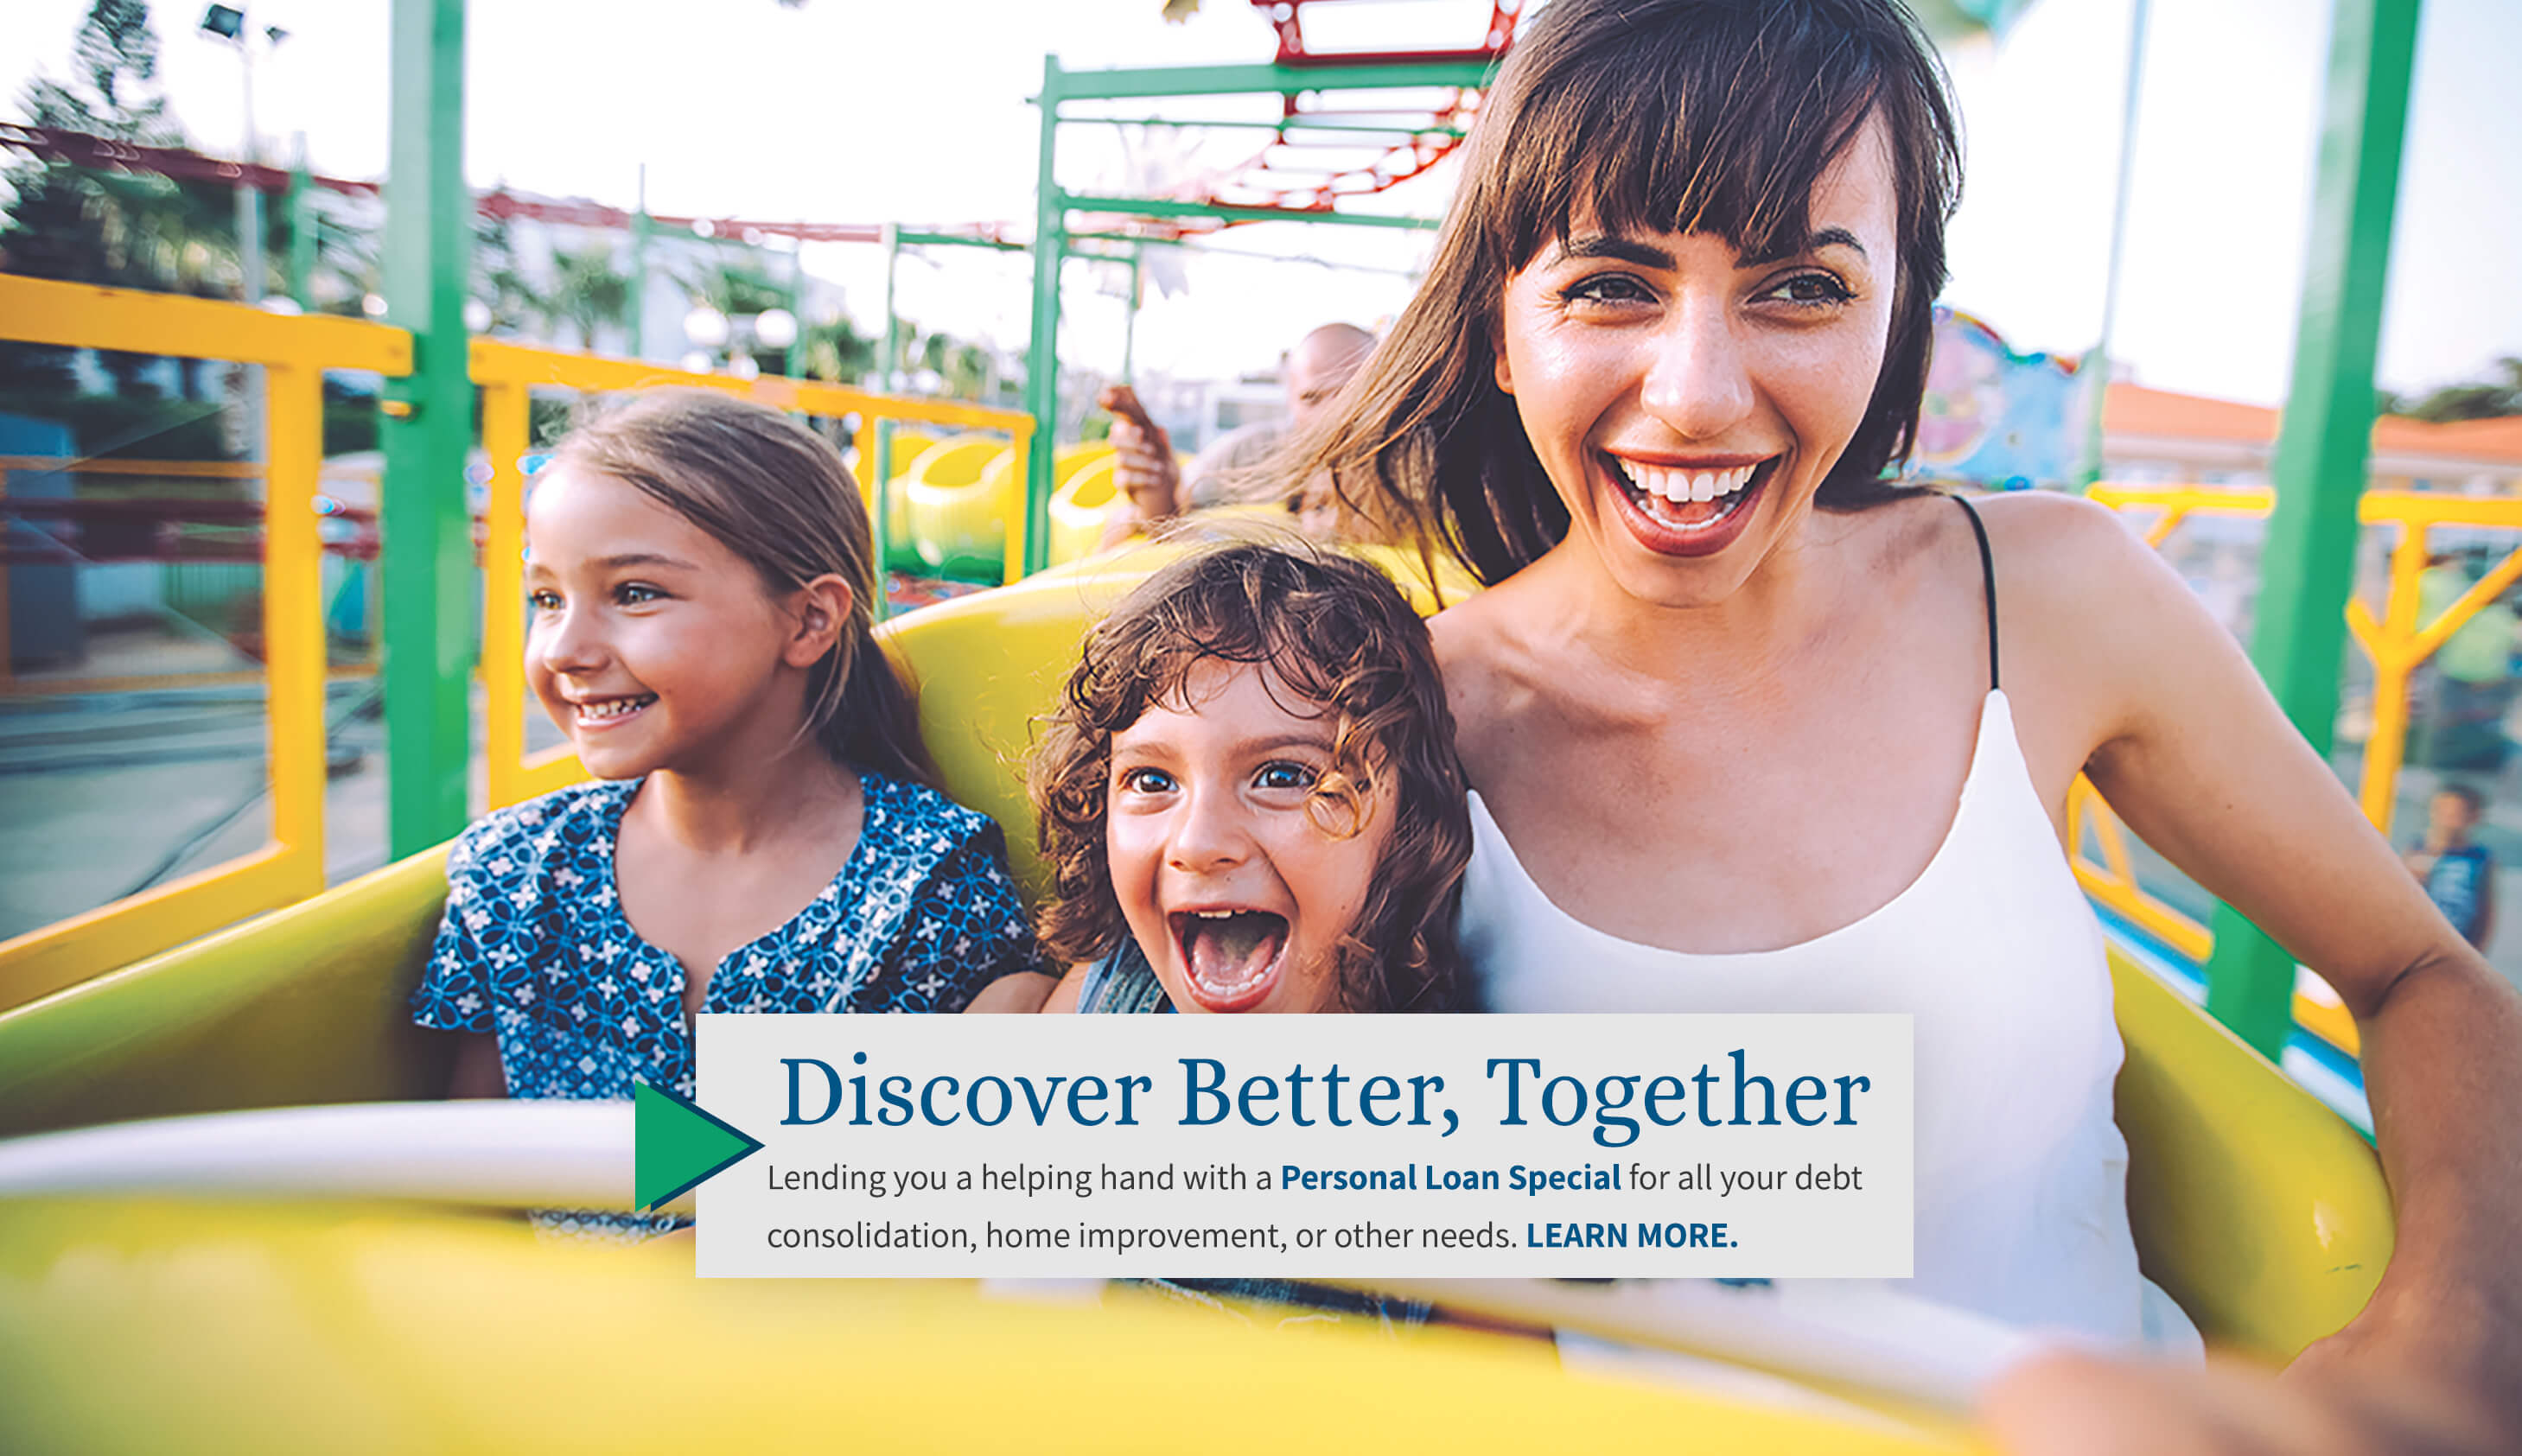 Discover Better, Together. Lending you a helping hand with a Personal Loan Special for all your debt consolidation, home improvement, or other needs. Learn More.